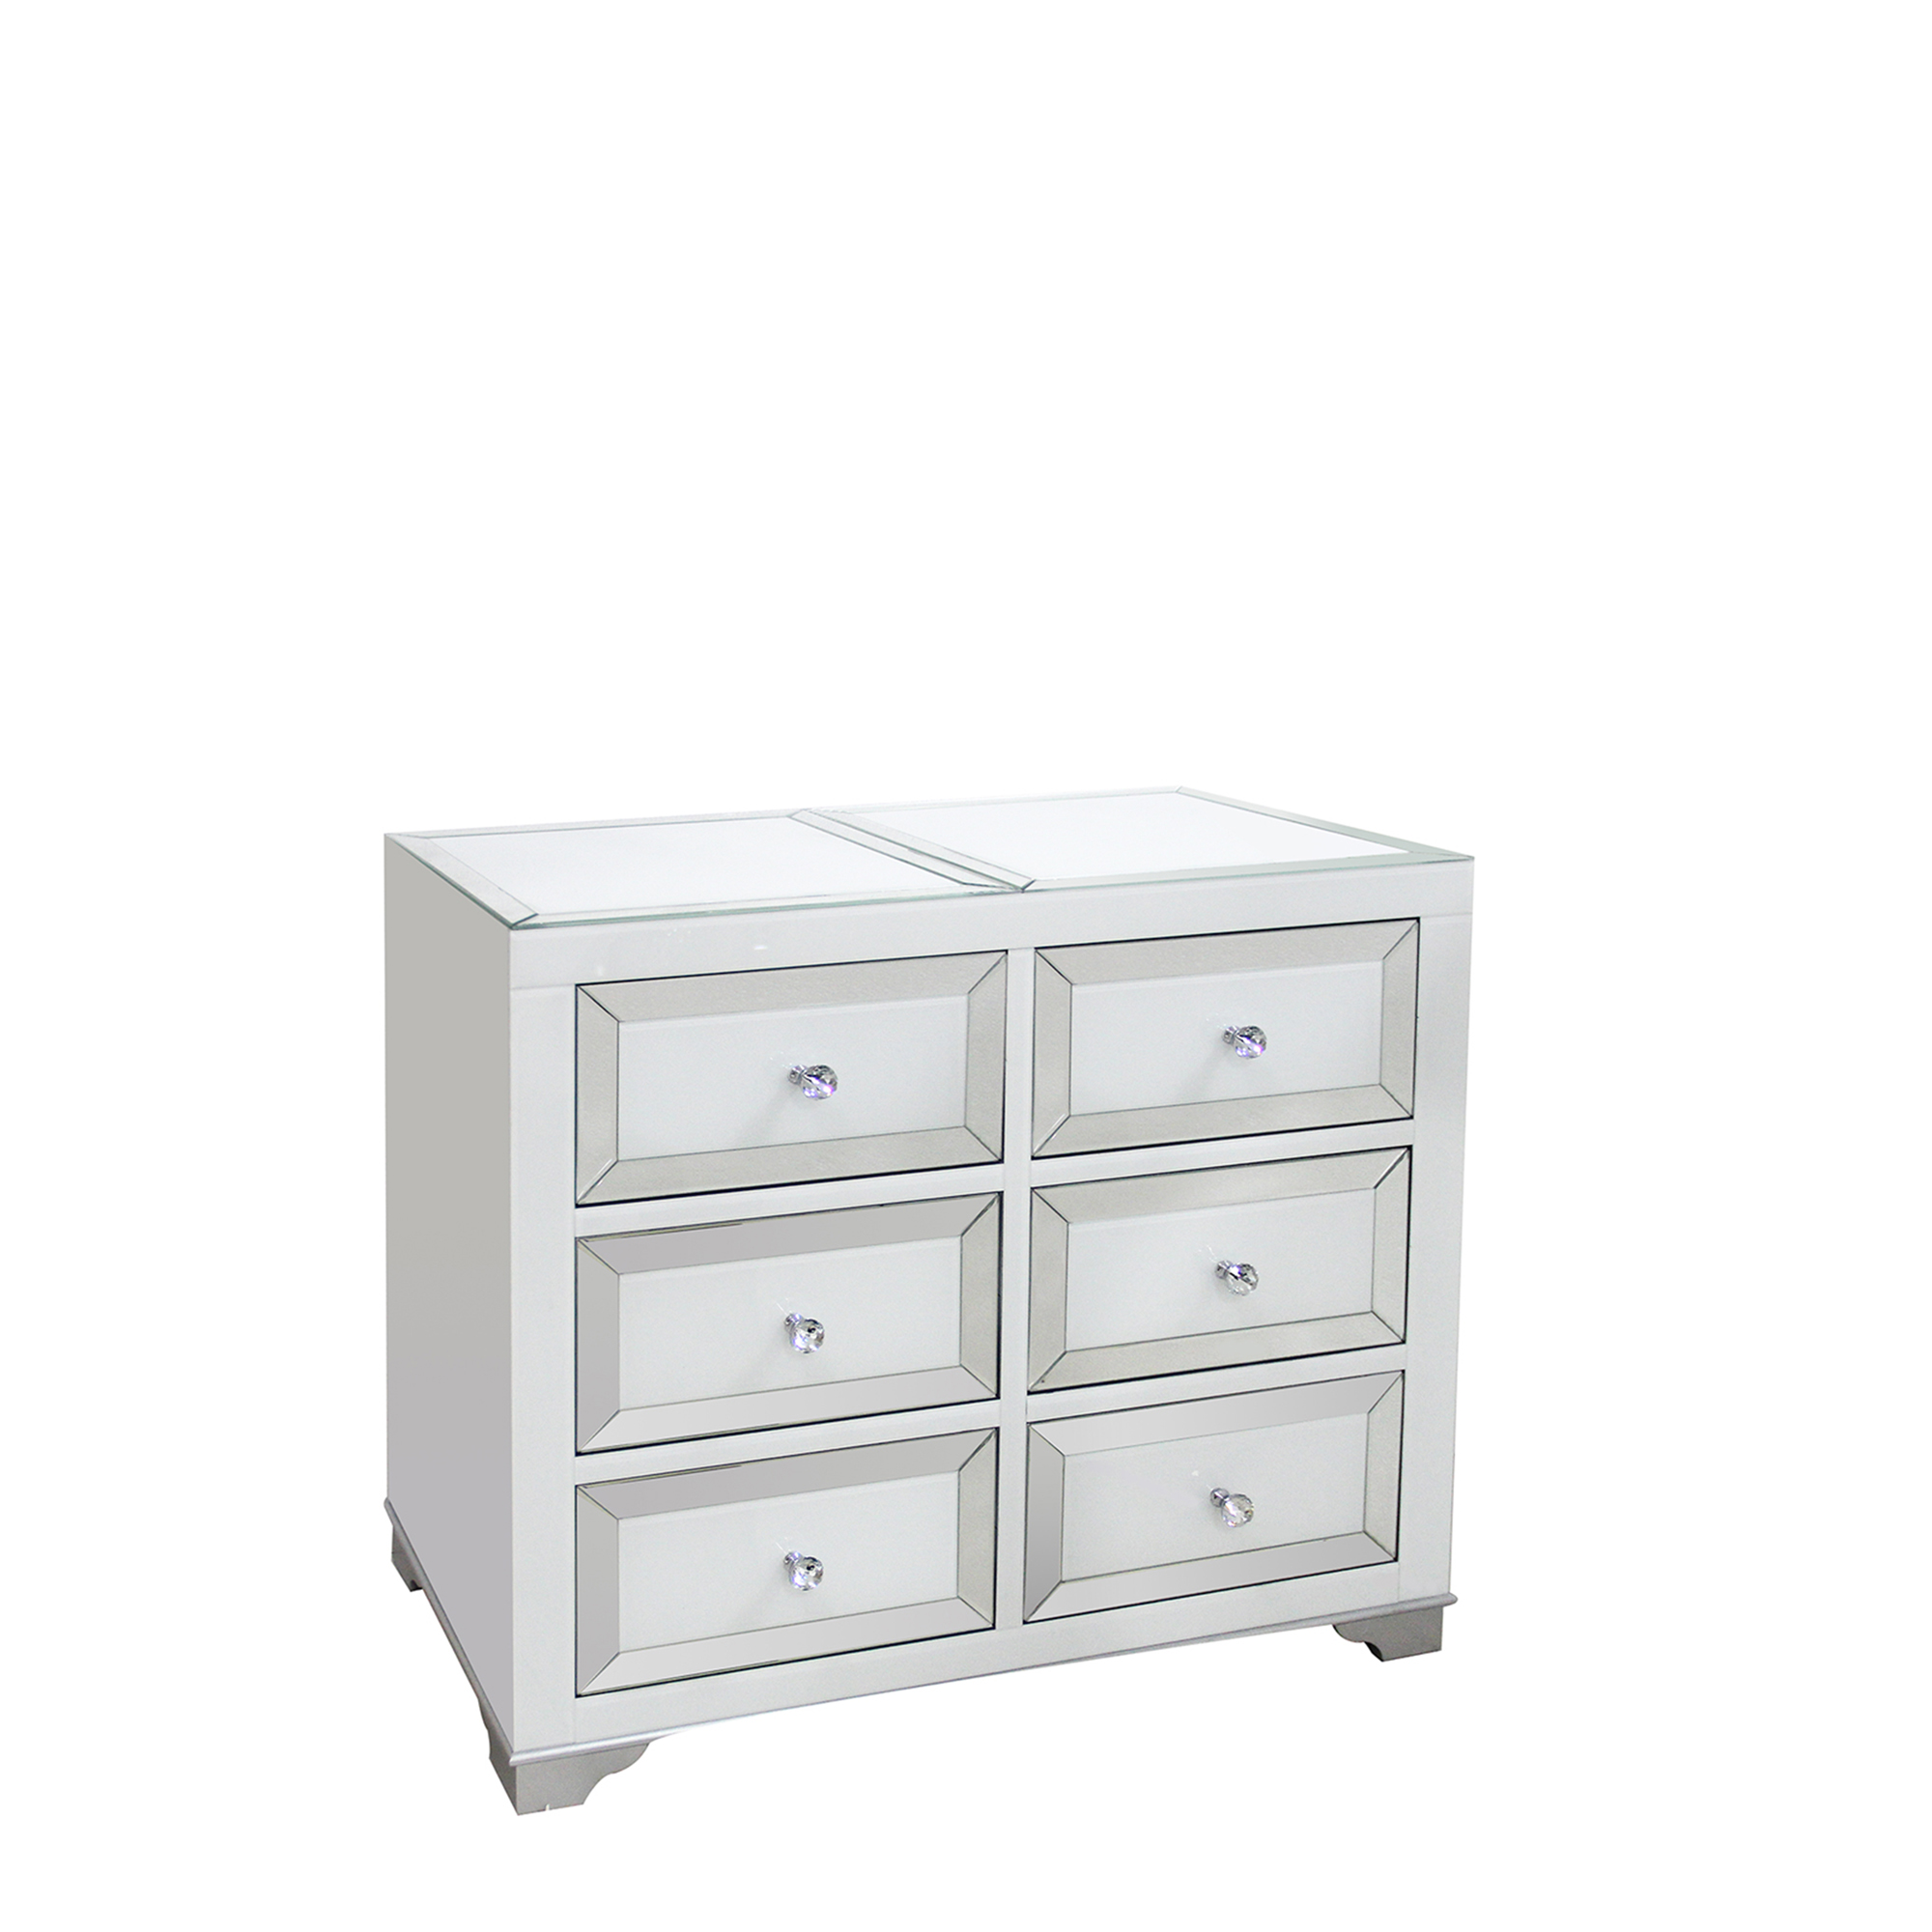 Bianca 6 Drawer Wide Chest Mirrored Silver White Bedroom Chests Fishpools